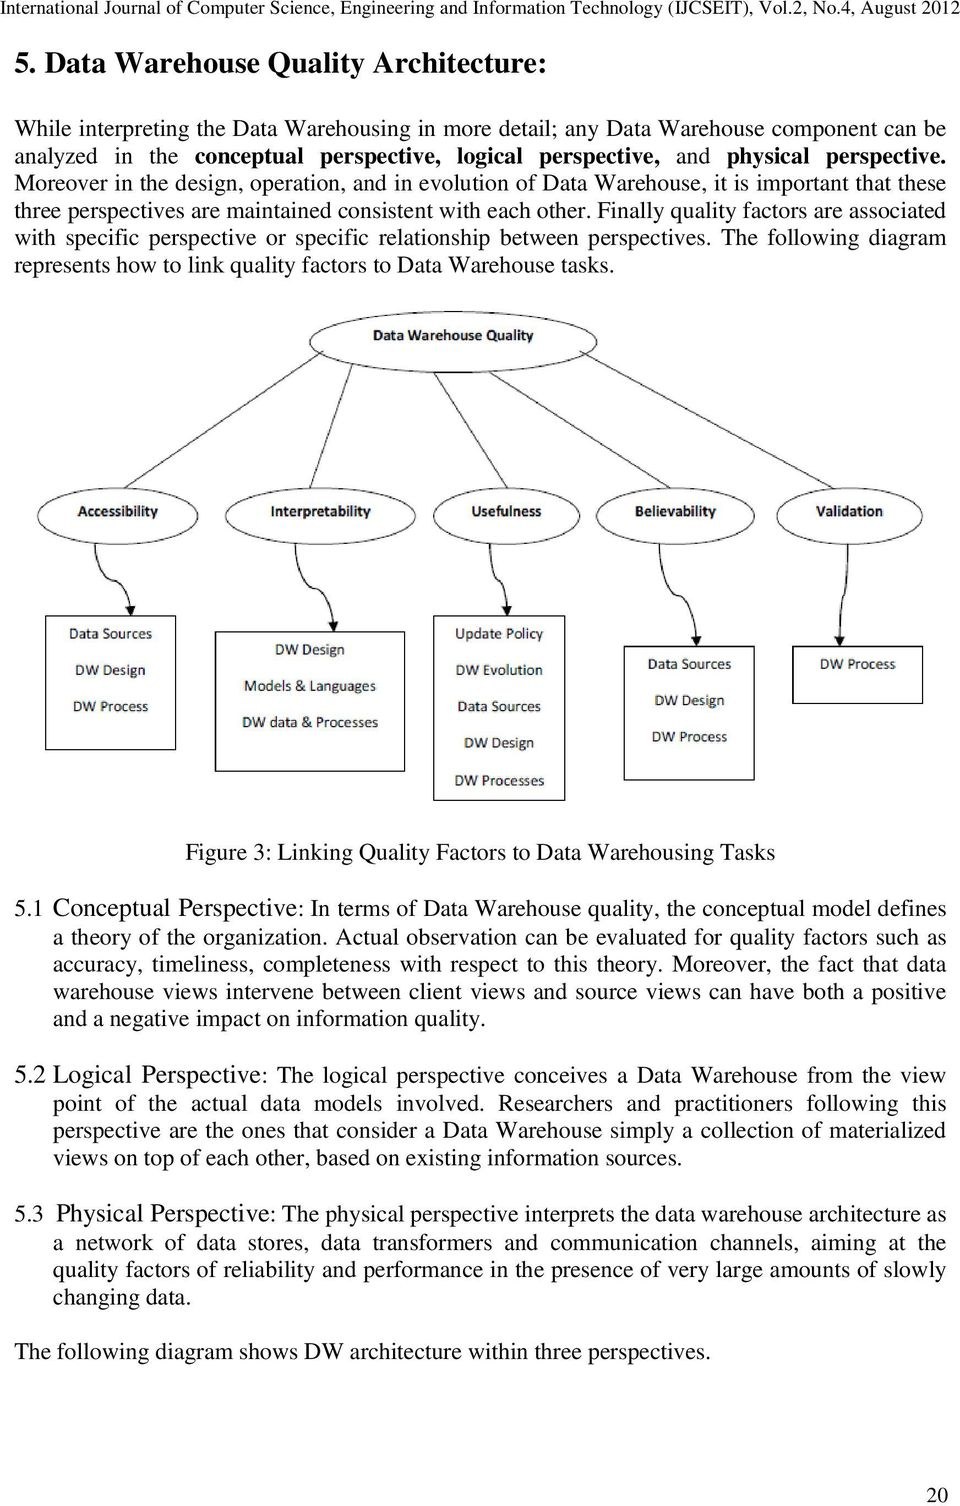 Finally quality factors are associated with specific perspective or specific relationship between perspectives. The following diagram represents how to link quality factors to Data Warehouse tasks.